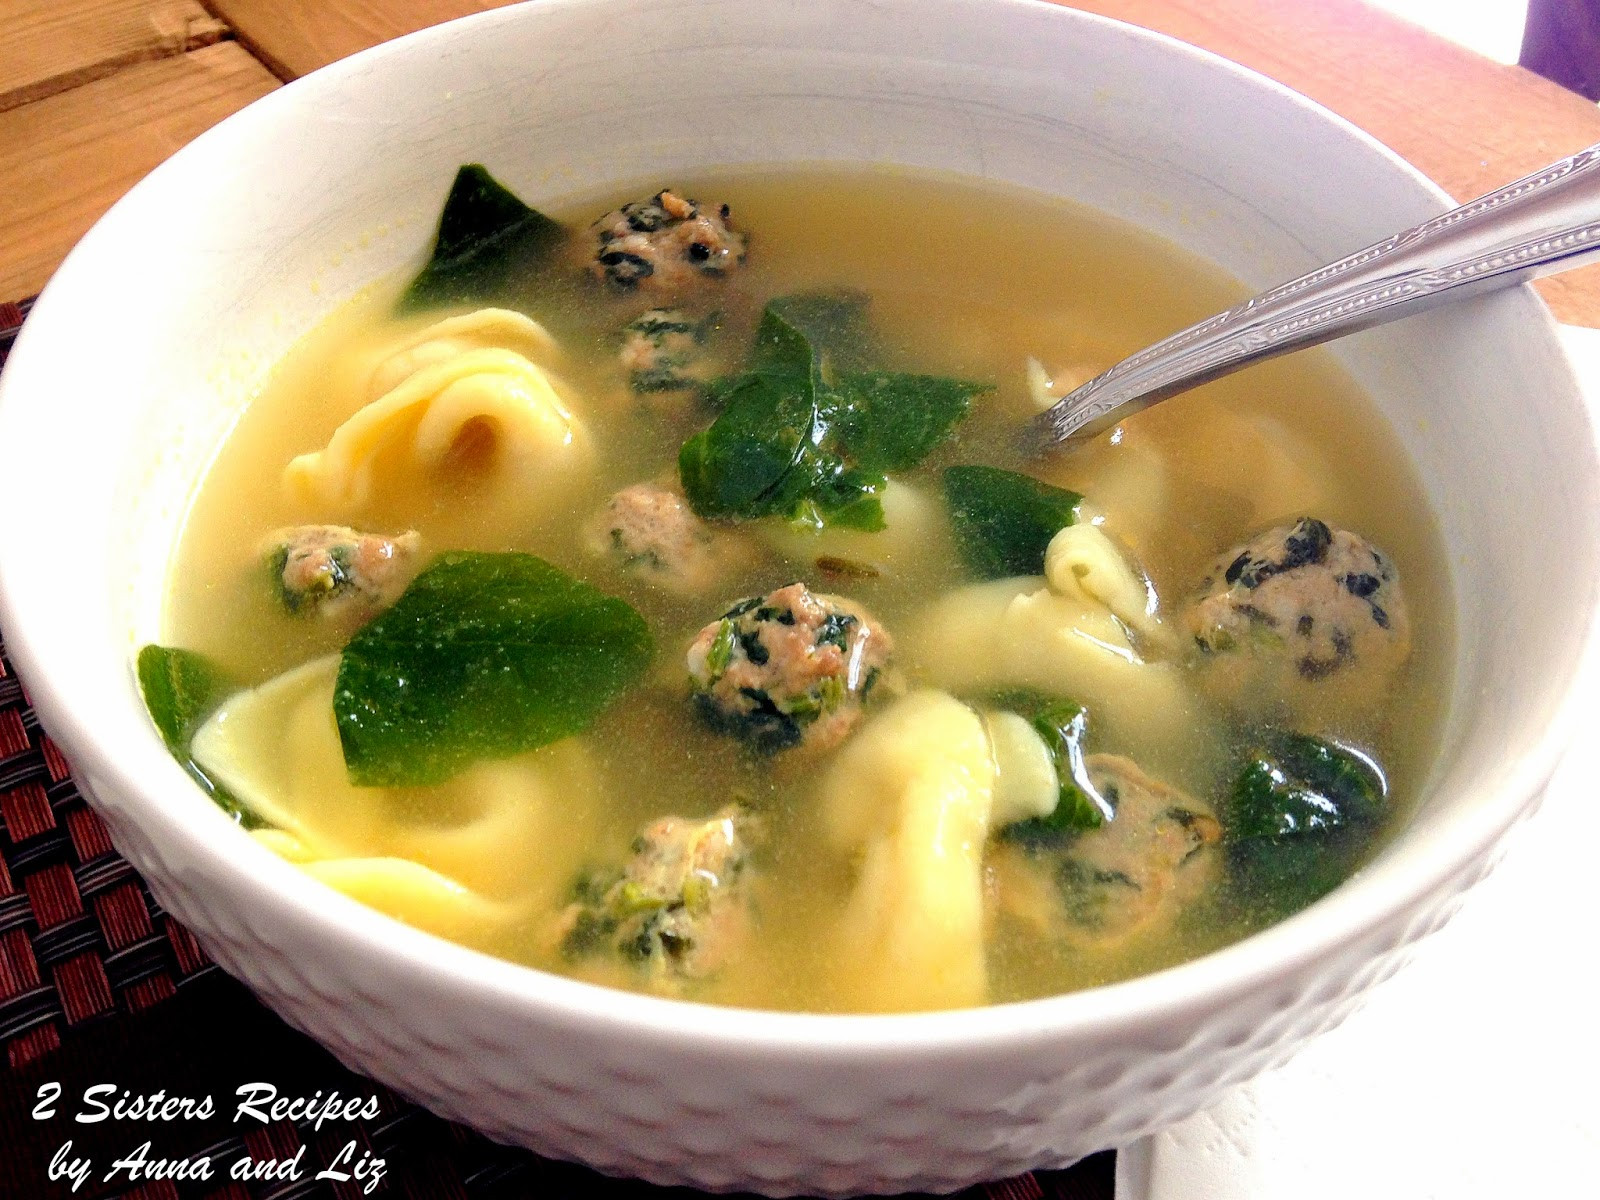 Italian Wedding Soup Recipes With Spinach  Italian Wedding Soup with Spinach Meatballs 2 Sisters